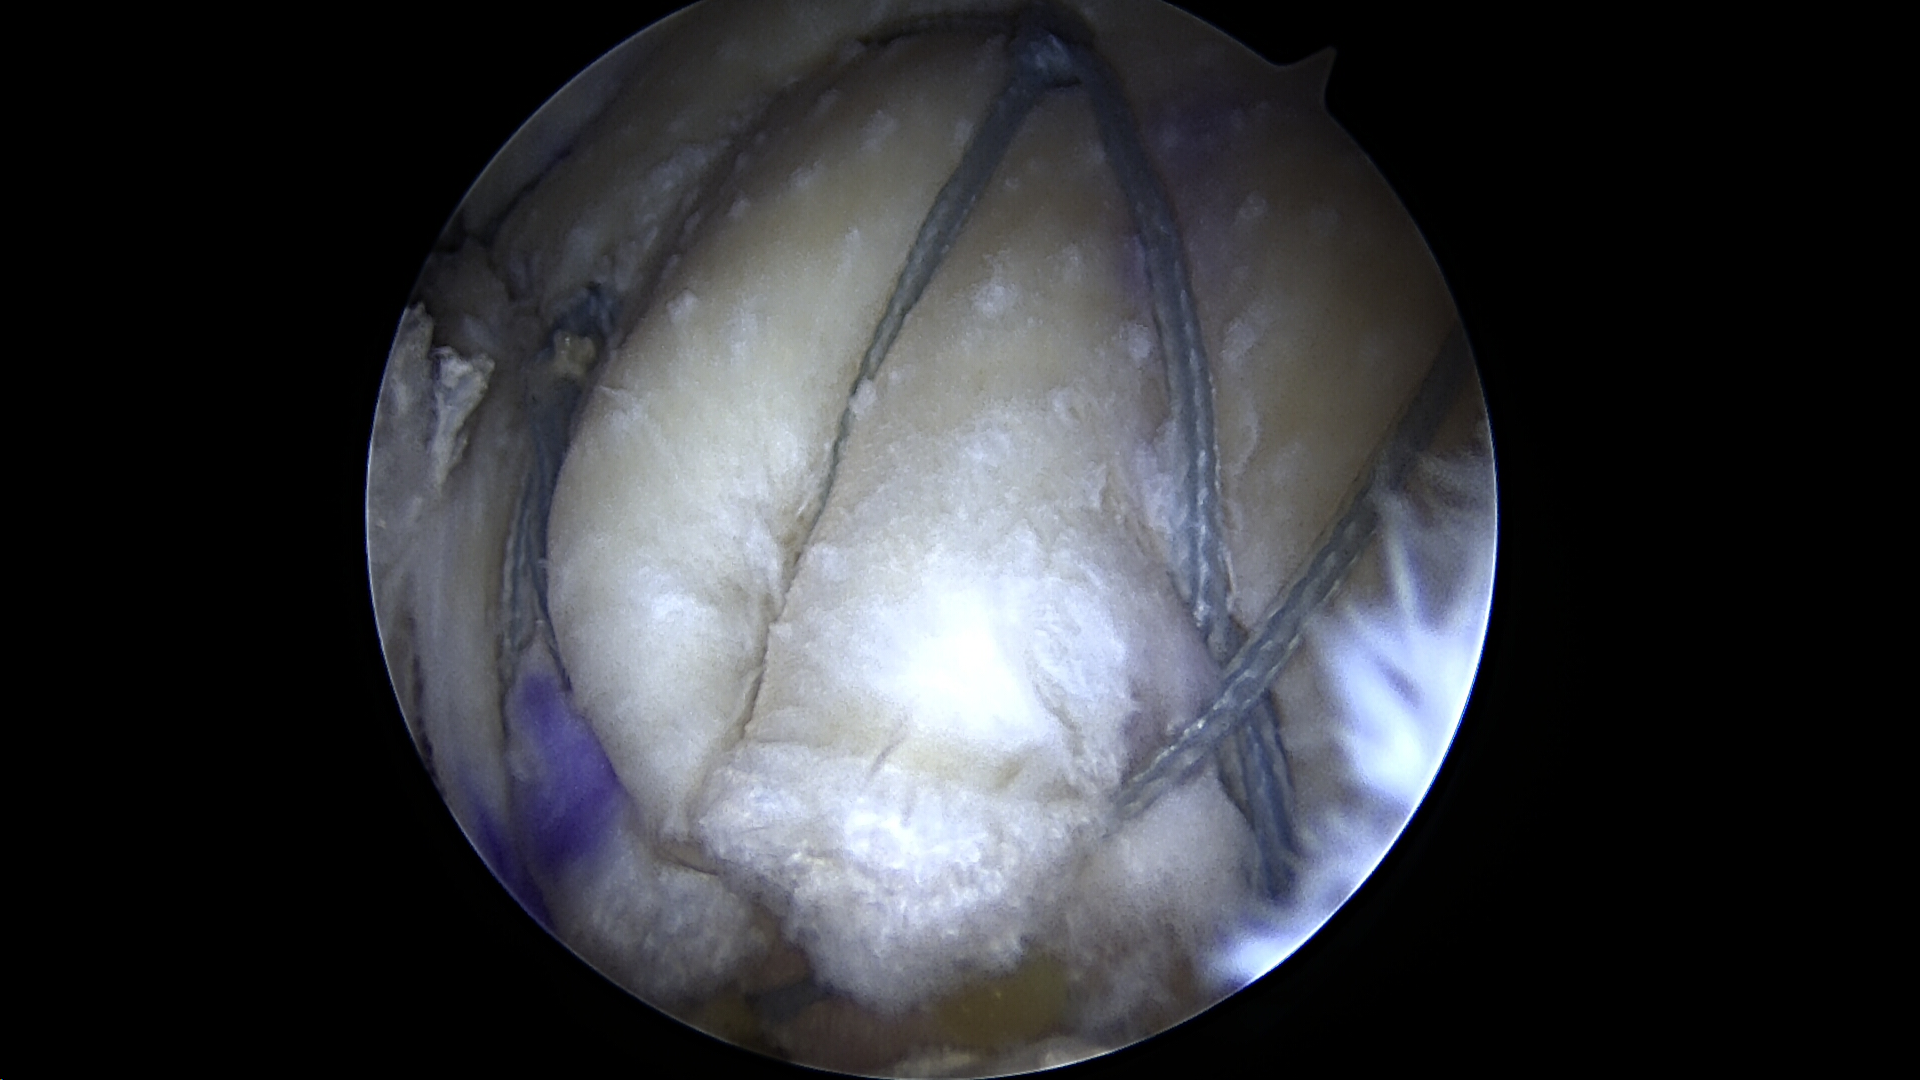 Arthroscopic augmentation of previous single row repair of massive retracted reparable single row repair using acellular dermal matrix graft viewed from the lateral portal